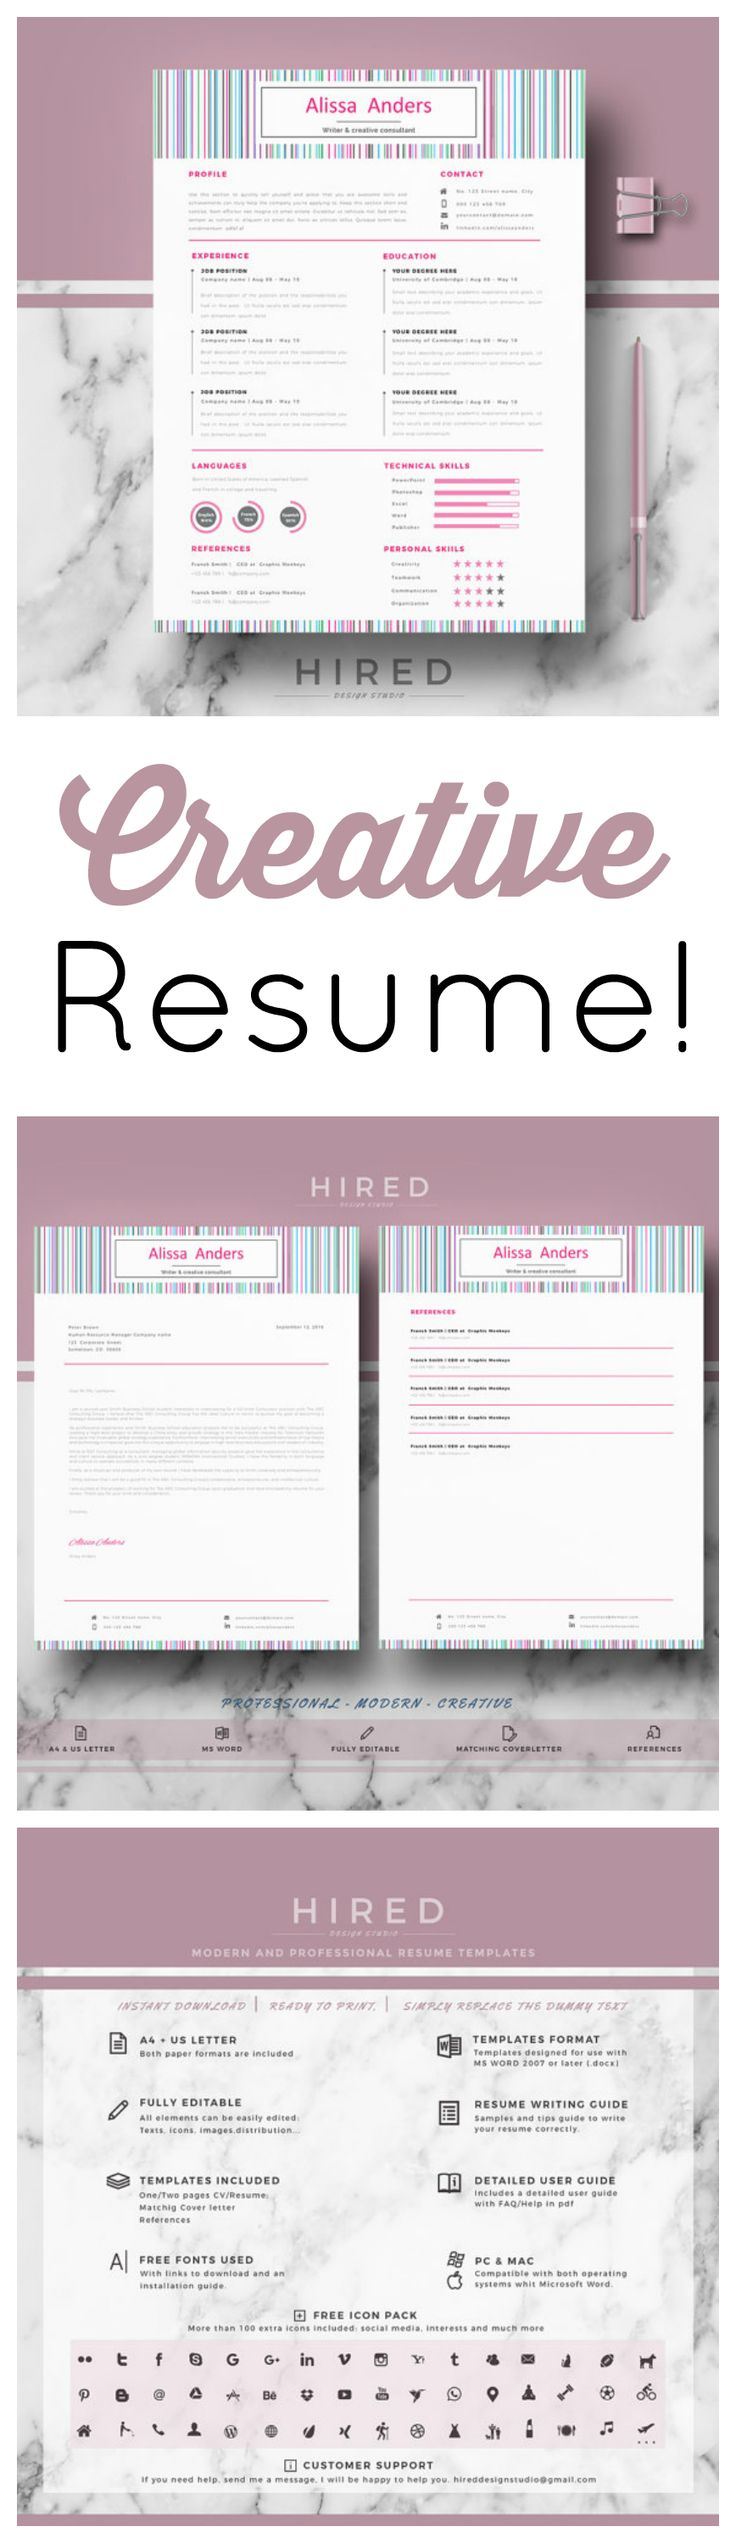 Love This Creative Resume!! And Love That There Is A Resume Writing Guide  Where You Can Find Lots Of Tips And Examples To Write Your Best Resume.